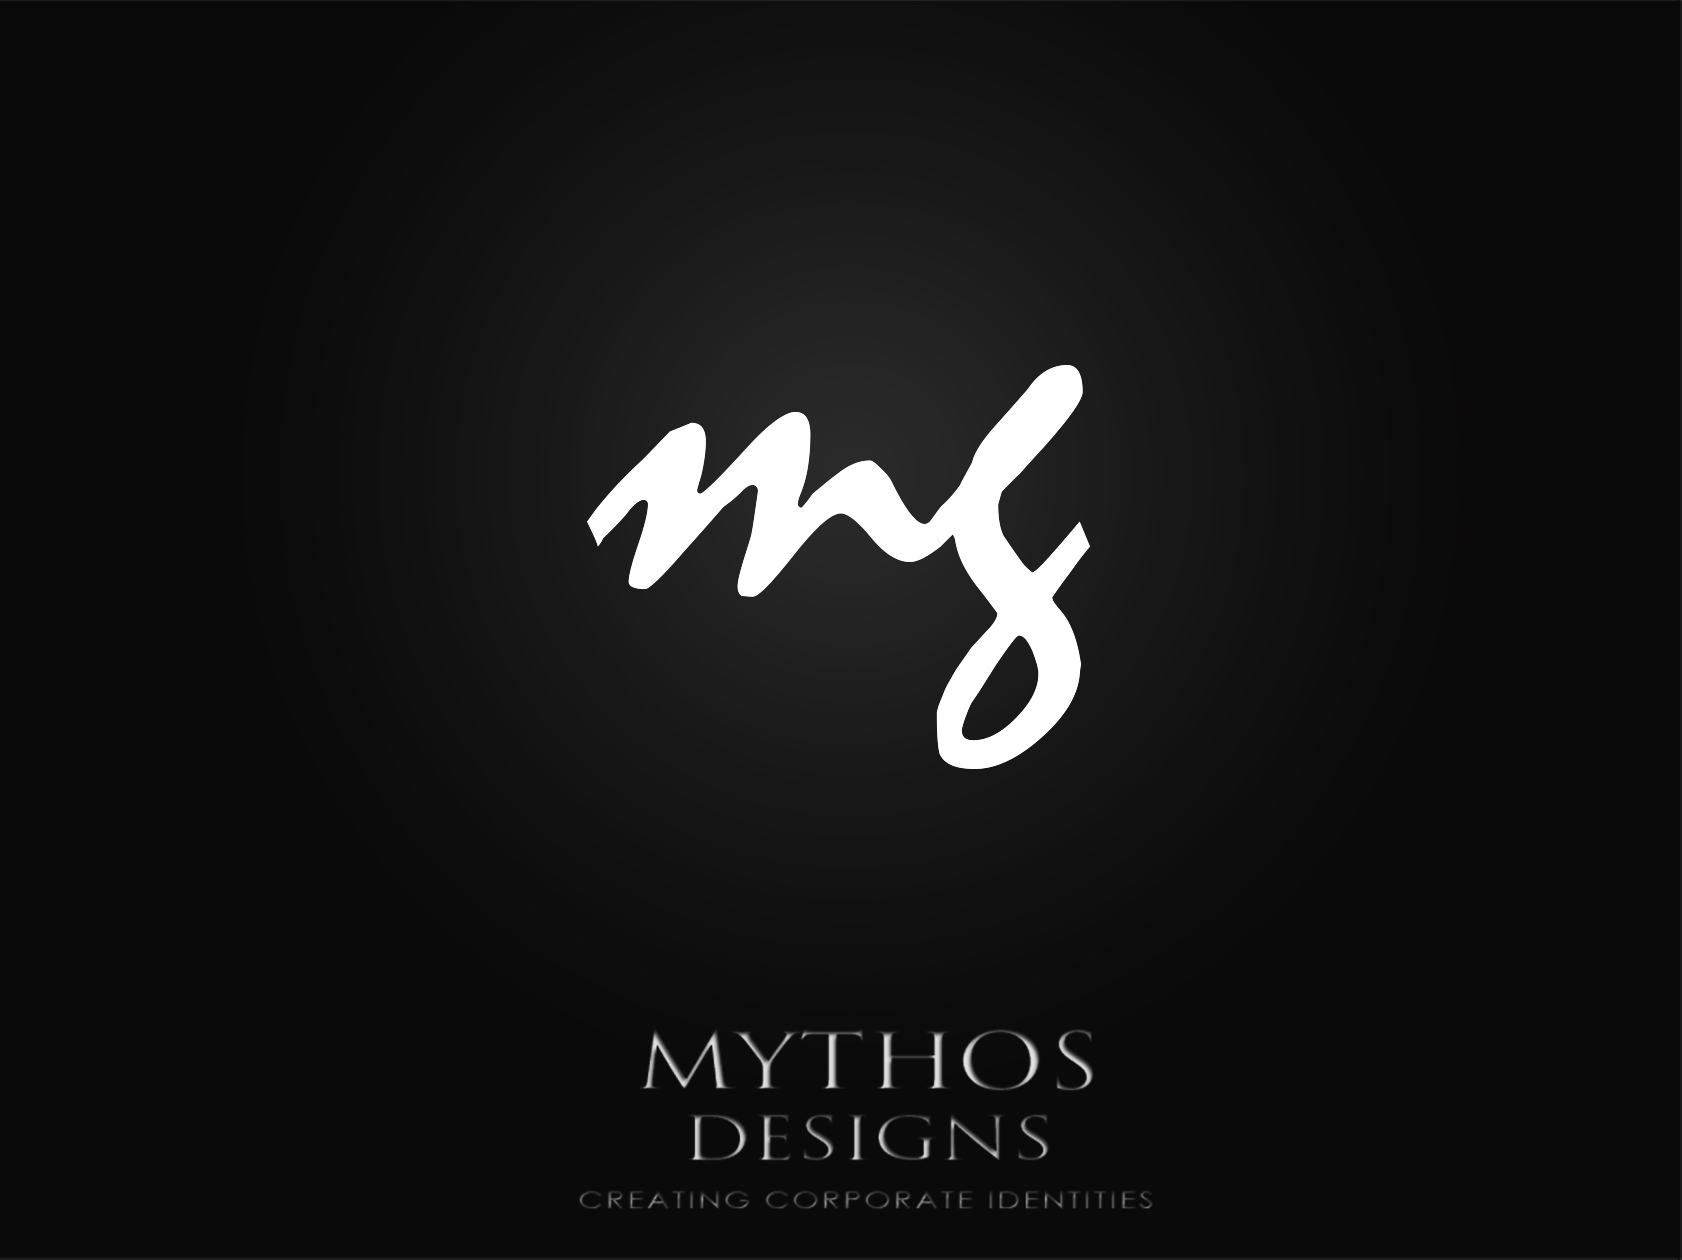 Custom Design by Mythos Designs - Entry No. 25 in the Custom Design Contest Imaginative Custom Design for MG.